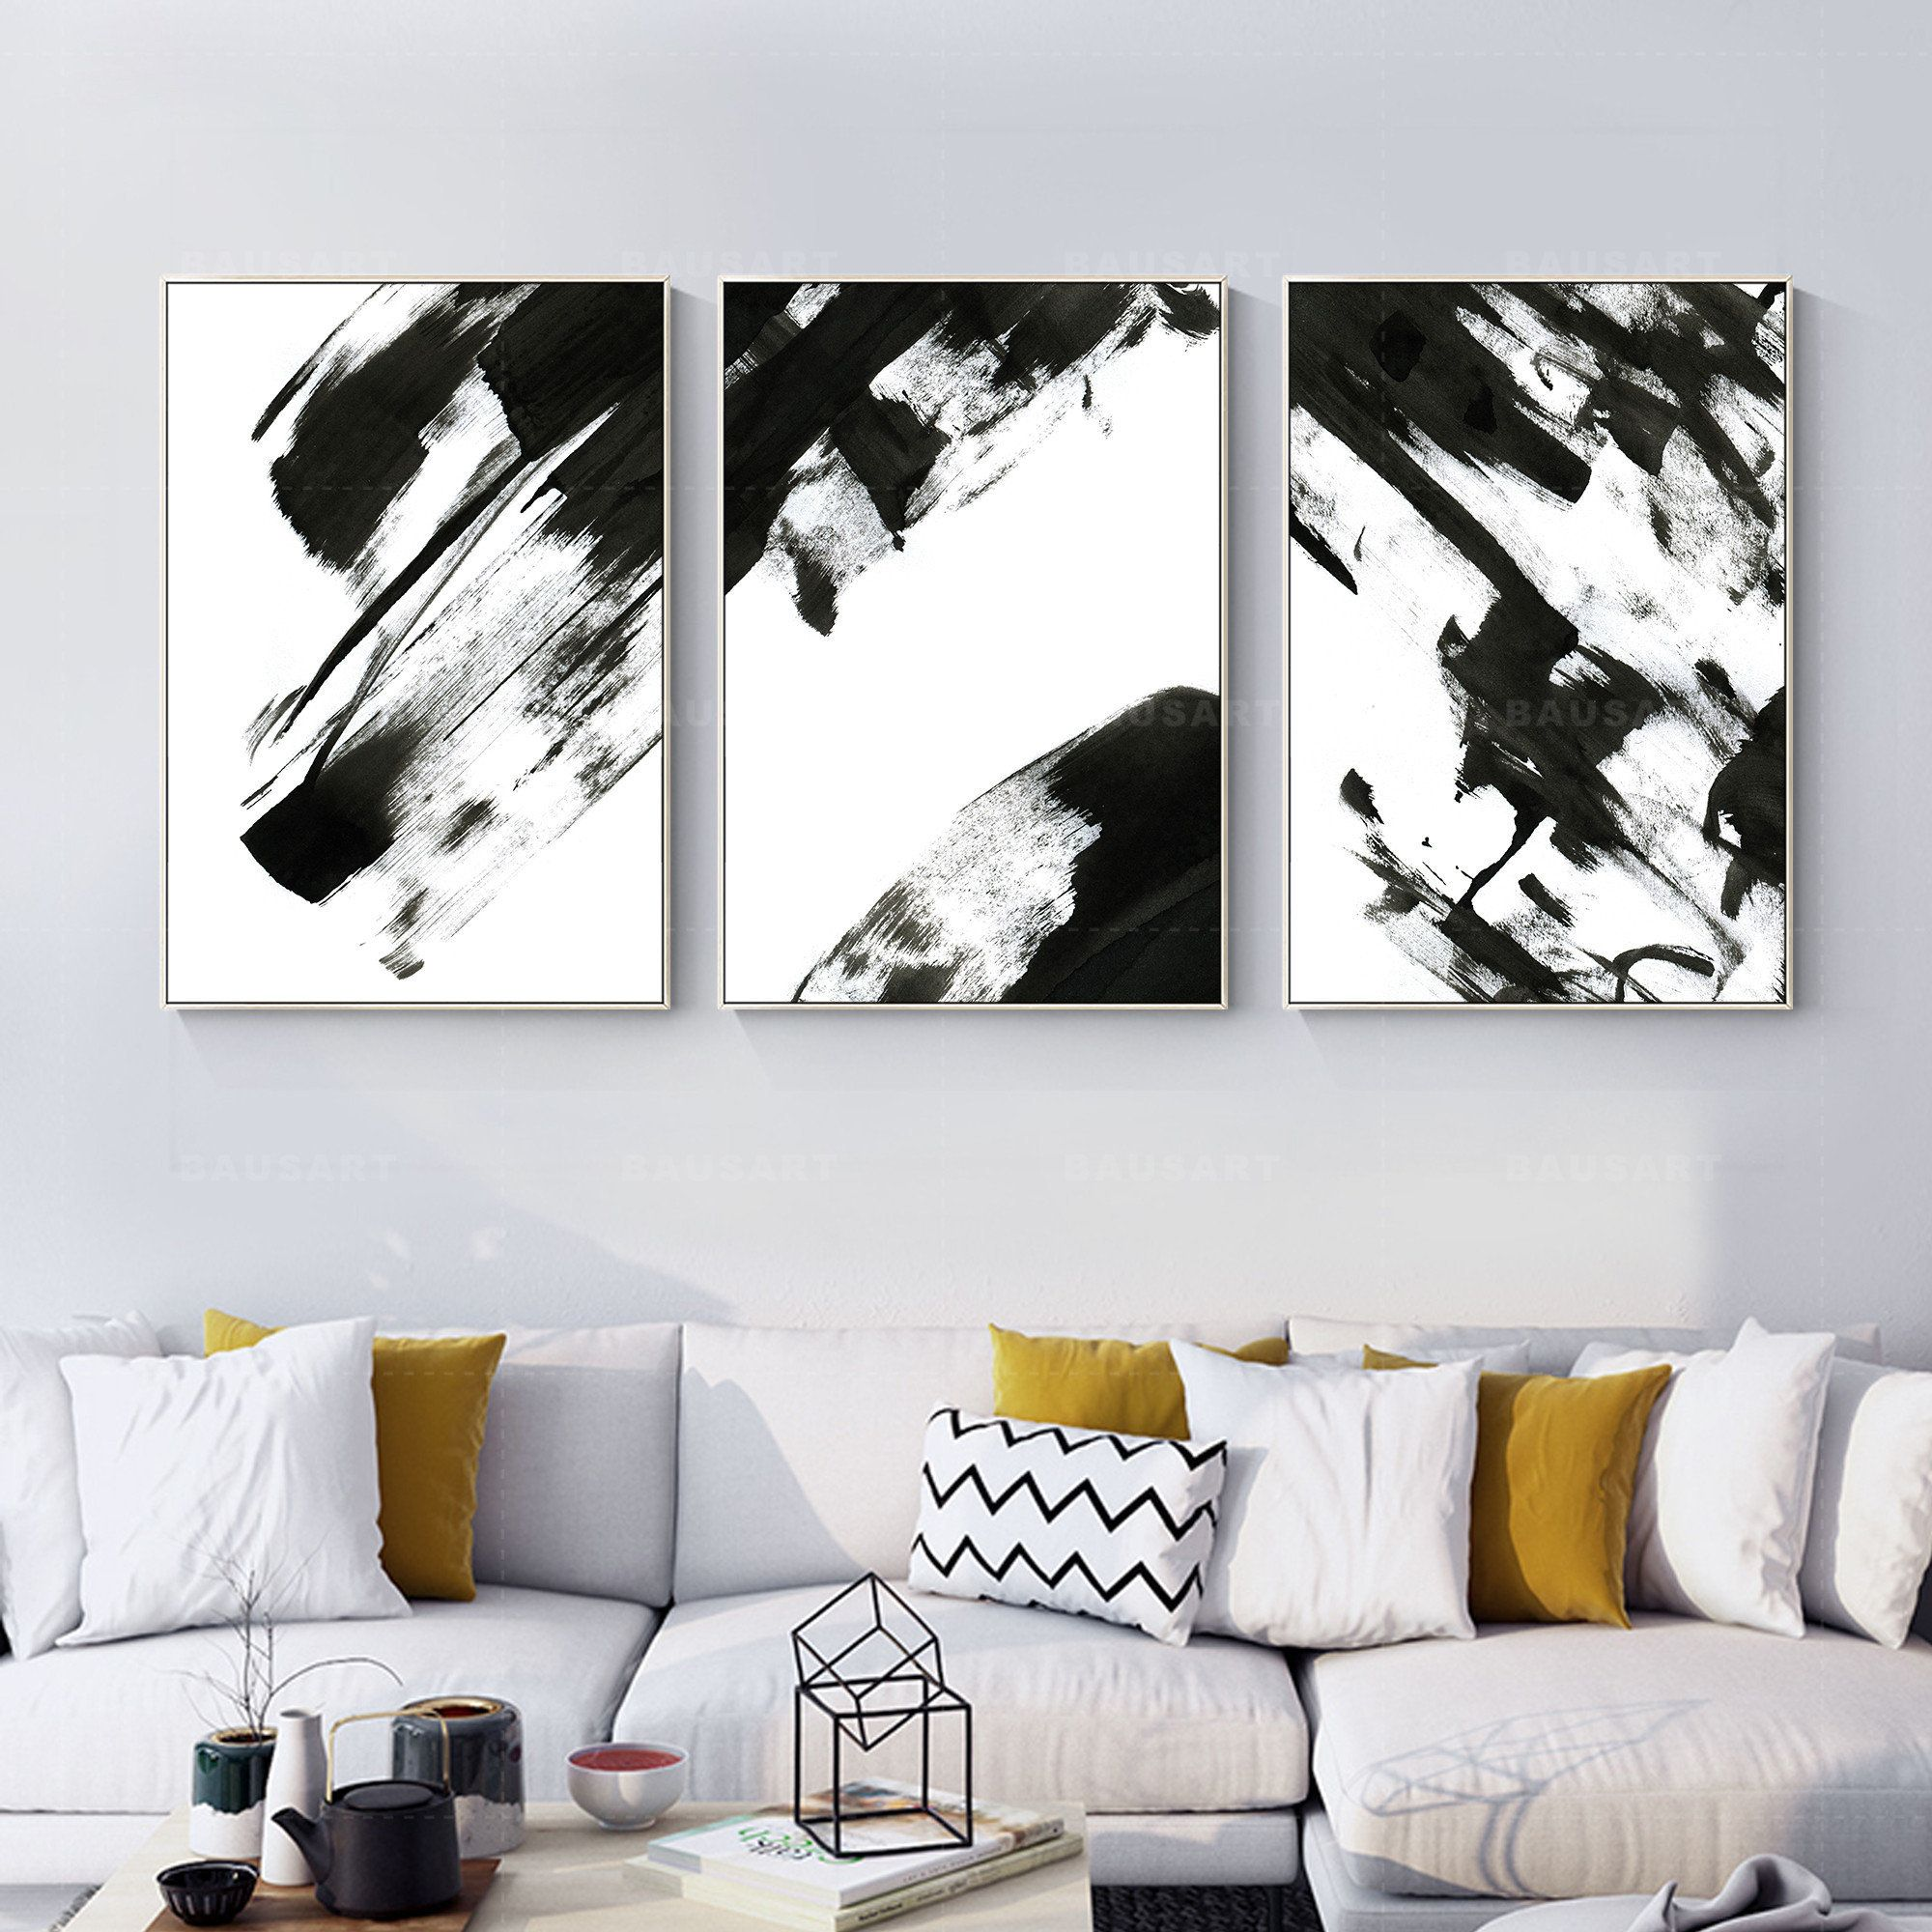 Abstract Painting Print Framed Wall Art Set Of 3 Prints Etsy In 2020 Framed Canvas Prints Framed Wall Art Sets Abstract Painting Print